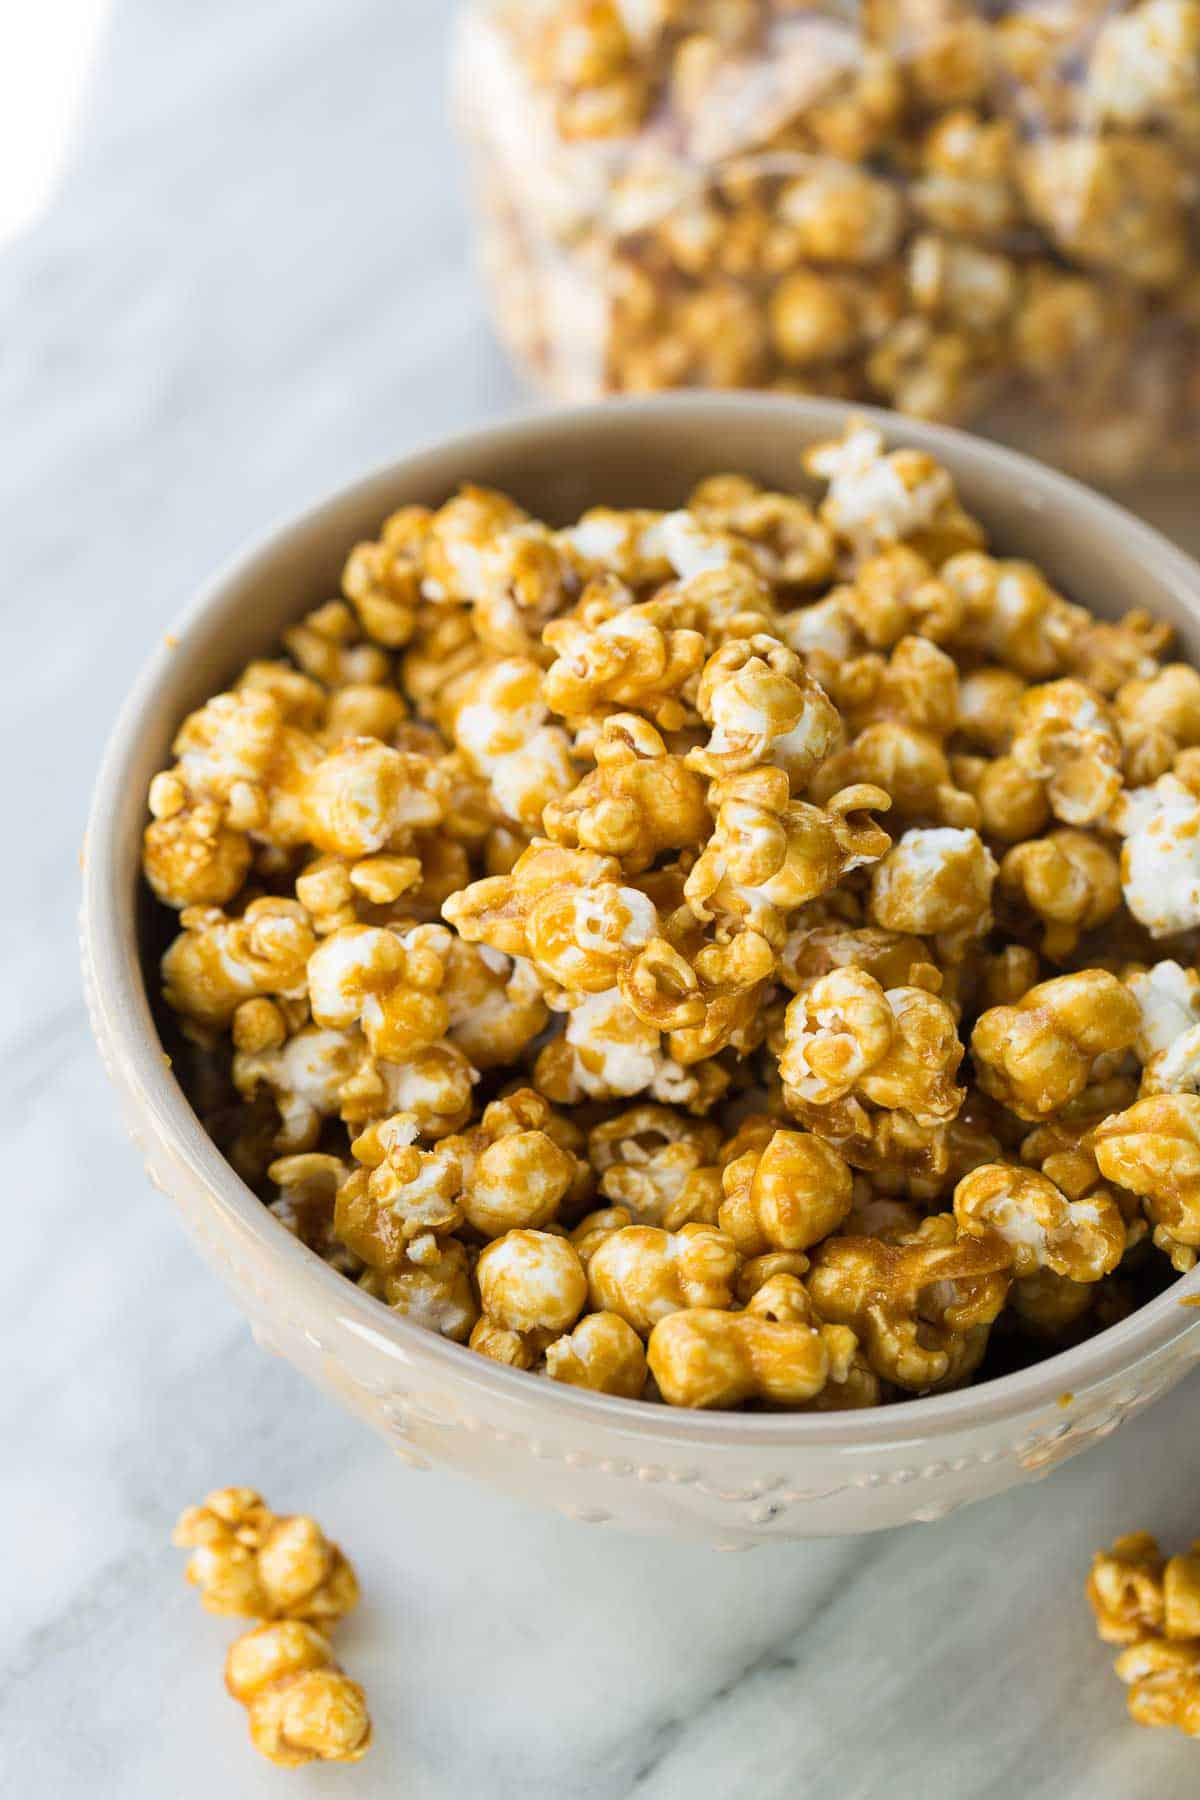 caramel corn in gray bowl for snacking